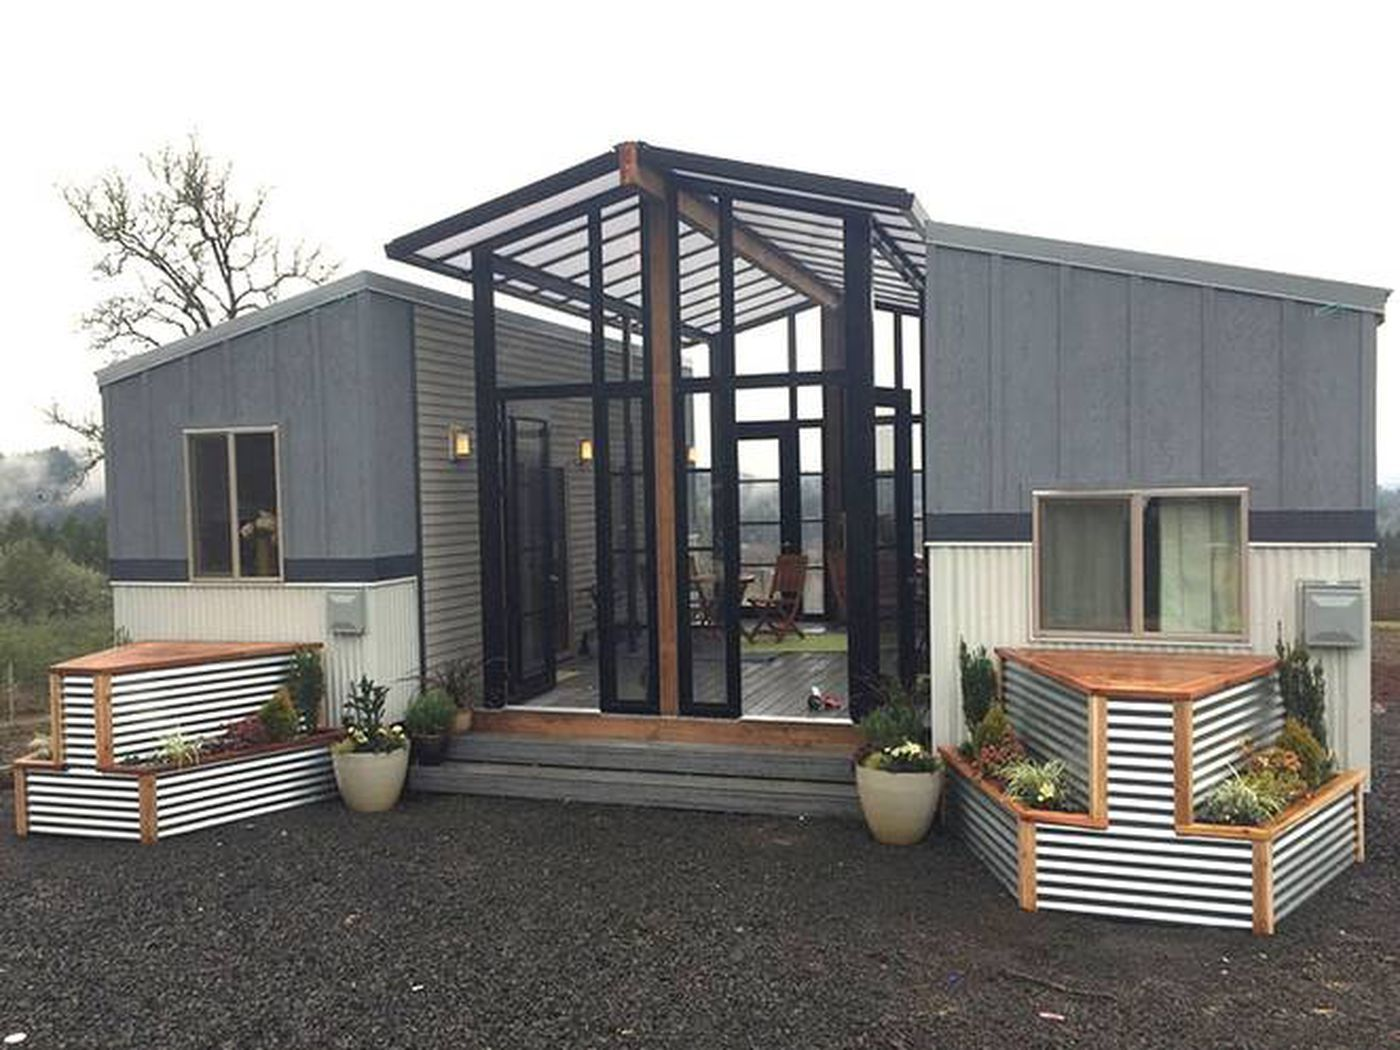 Two Tiny Houses And Open Air Sunroom Combine Into One Family Home Tiny House Builders Building A Container Home Tiny House Nation